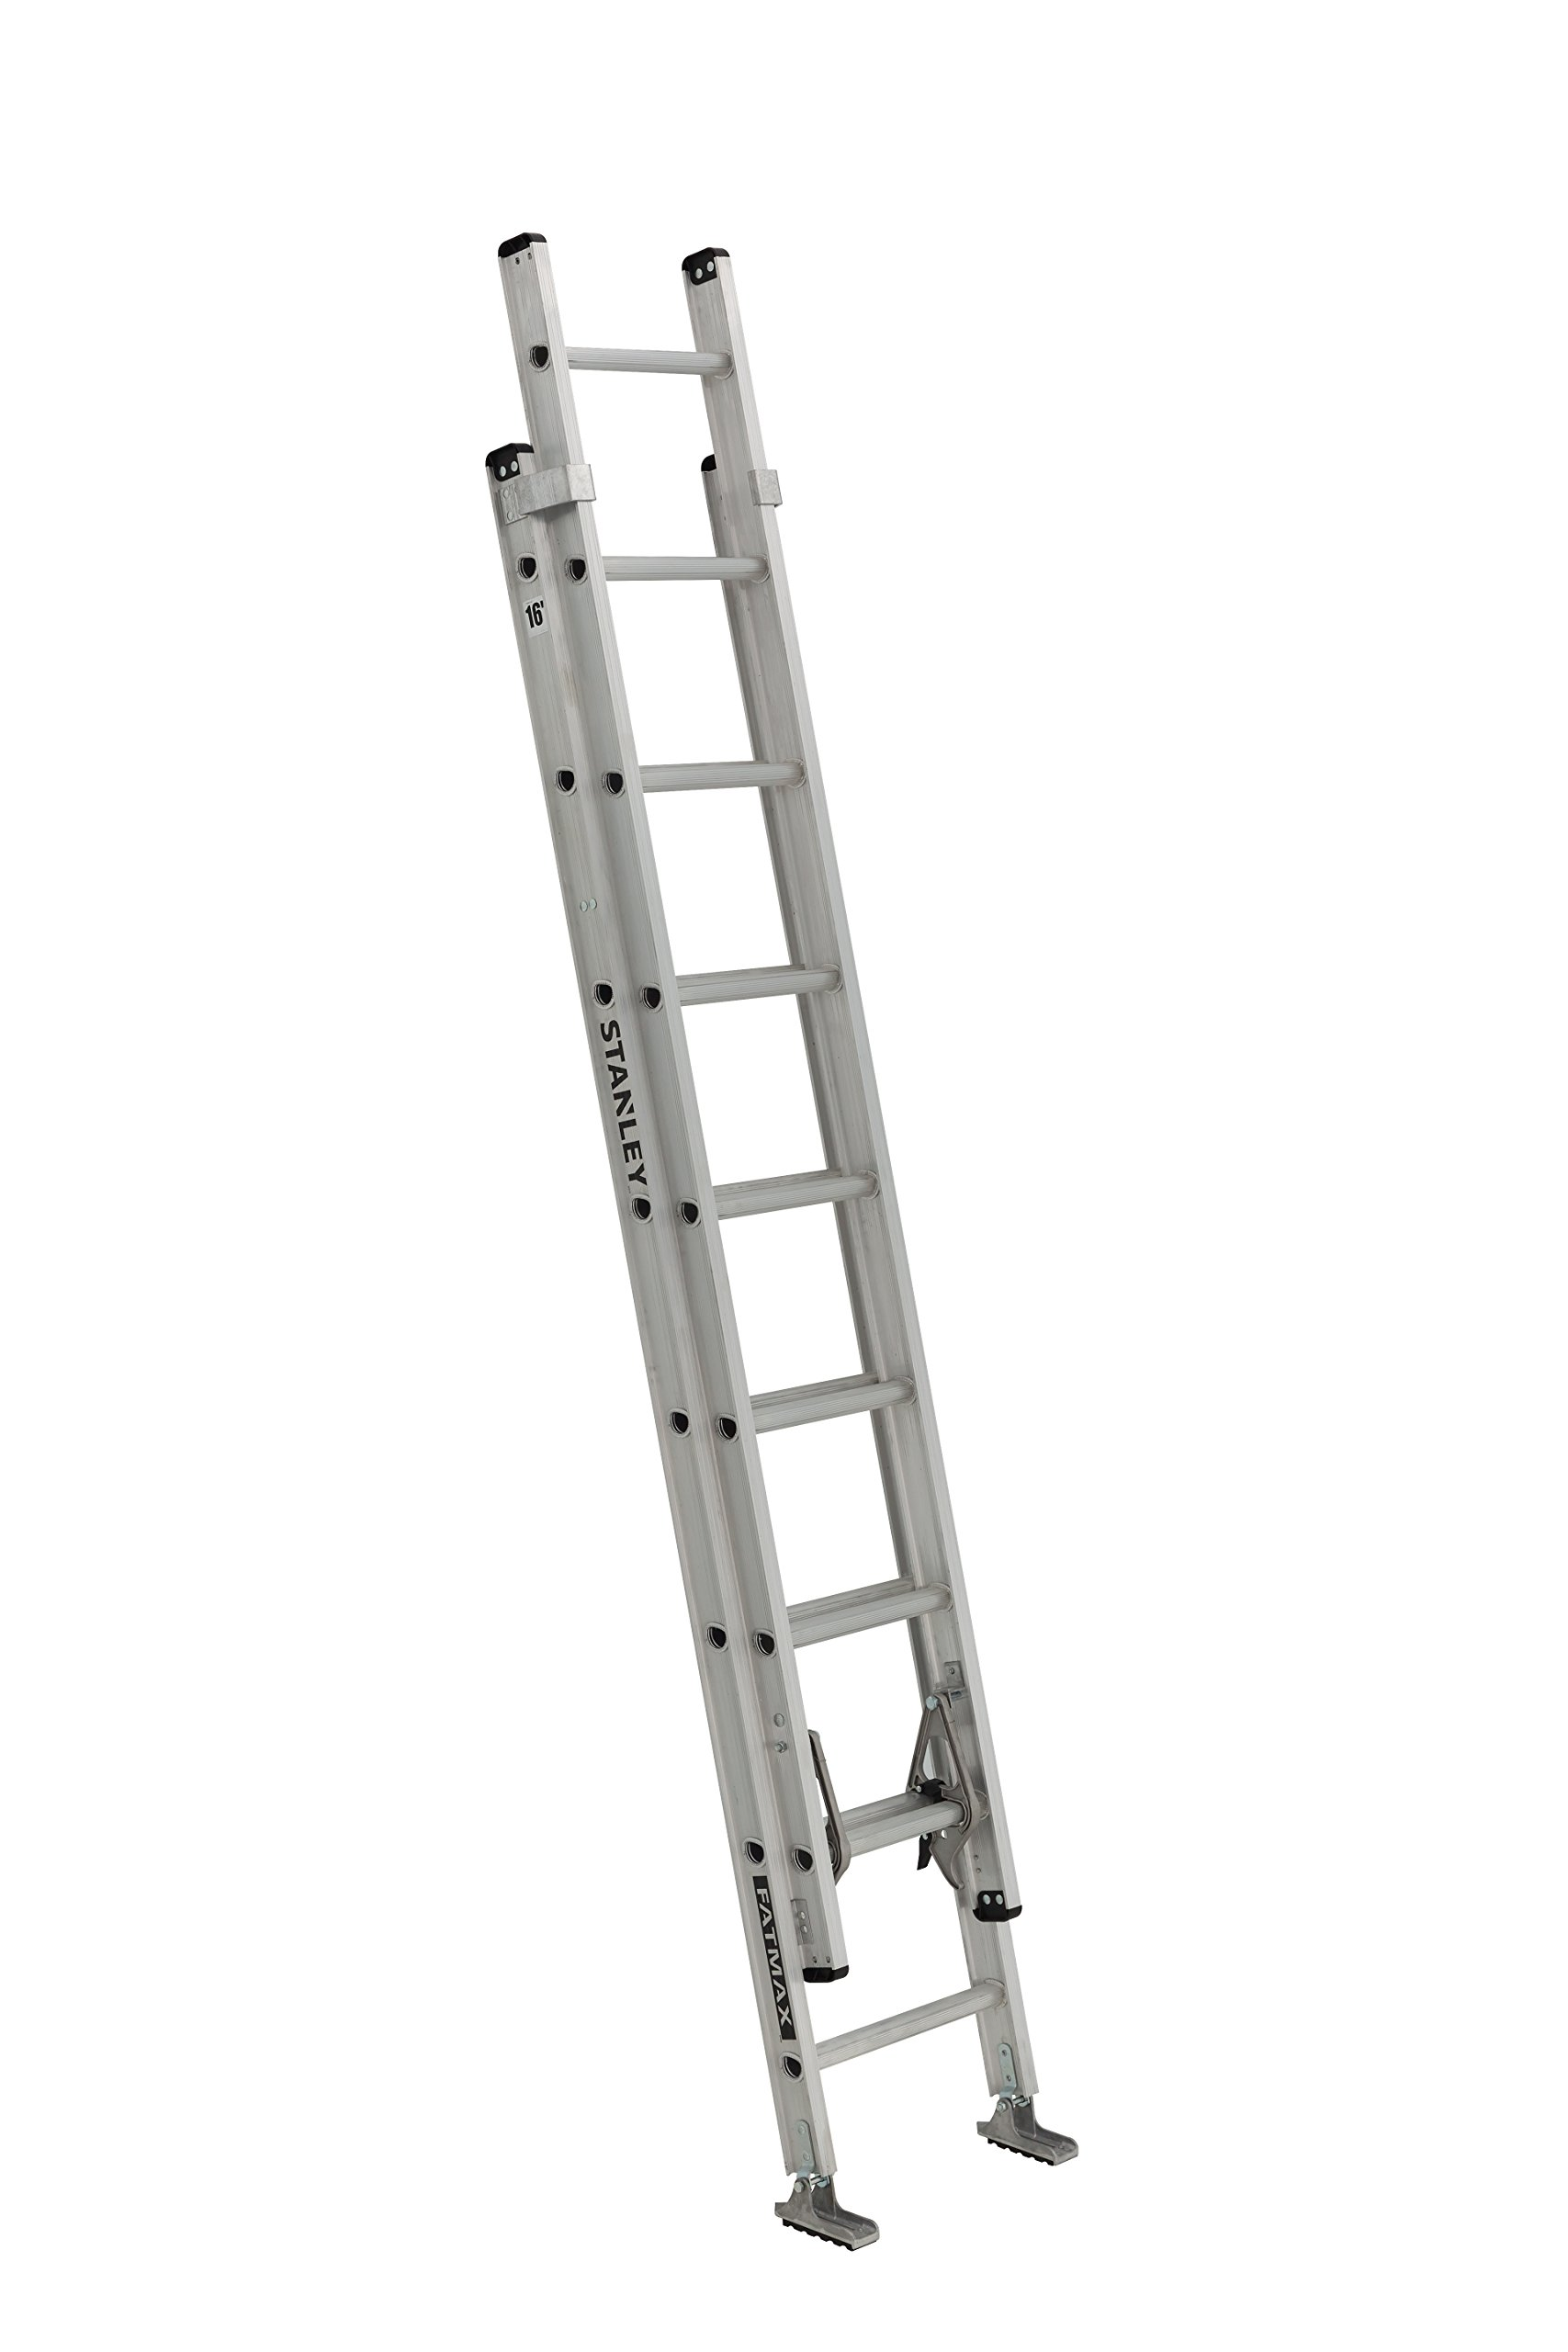 18 ft extension ladder mini rotary washing line